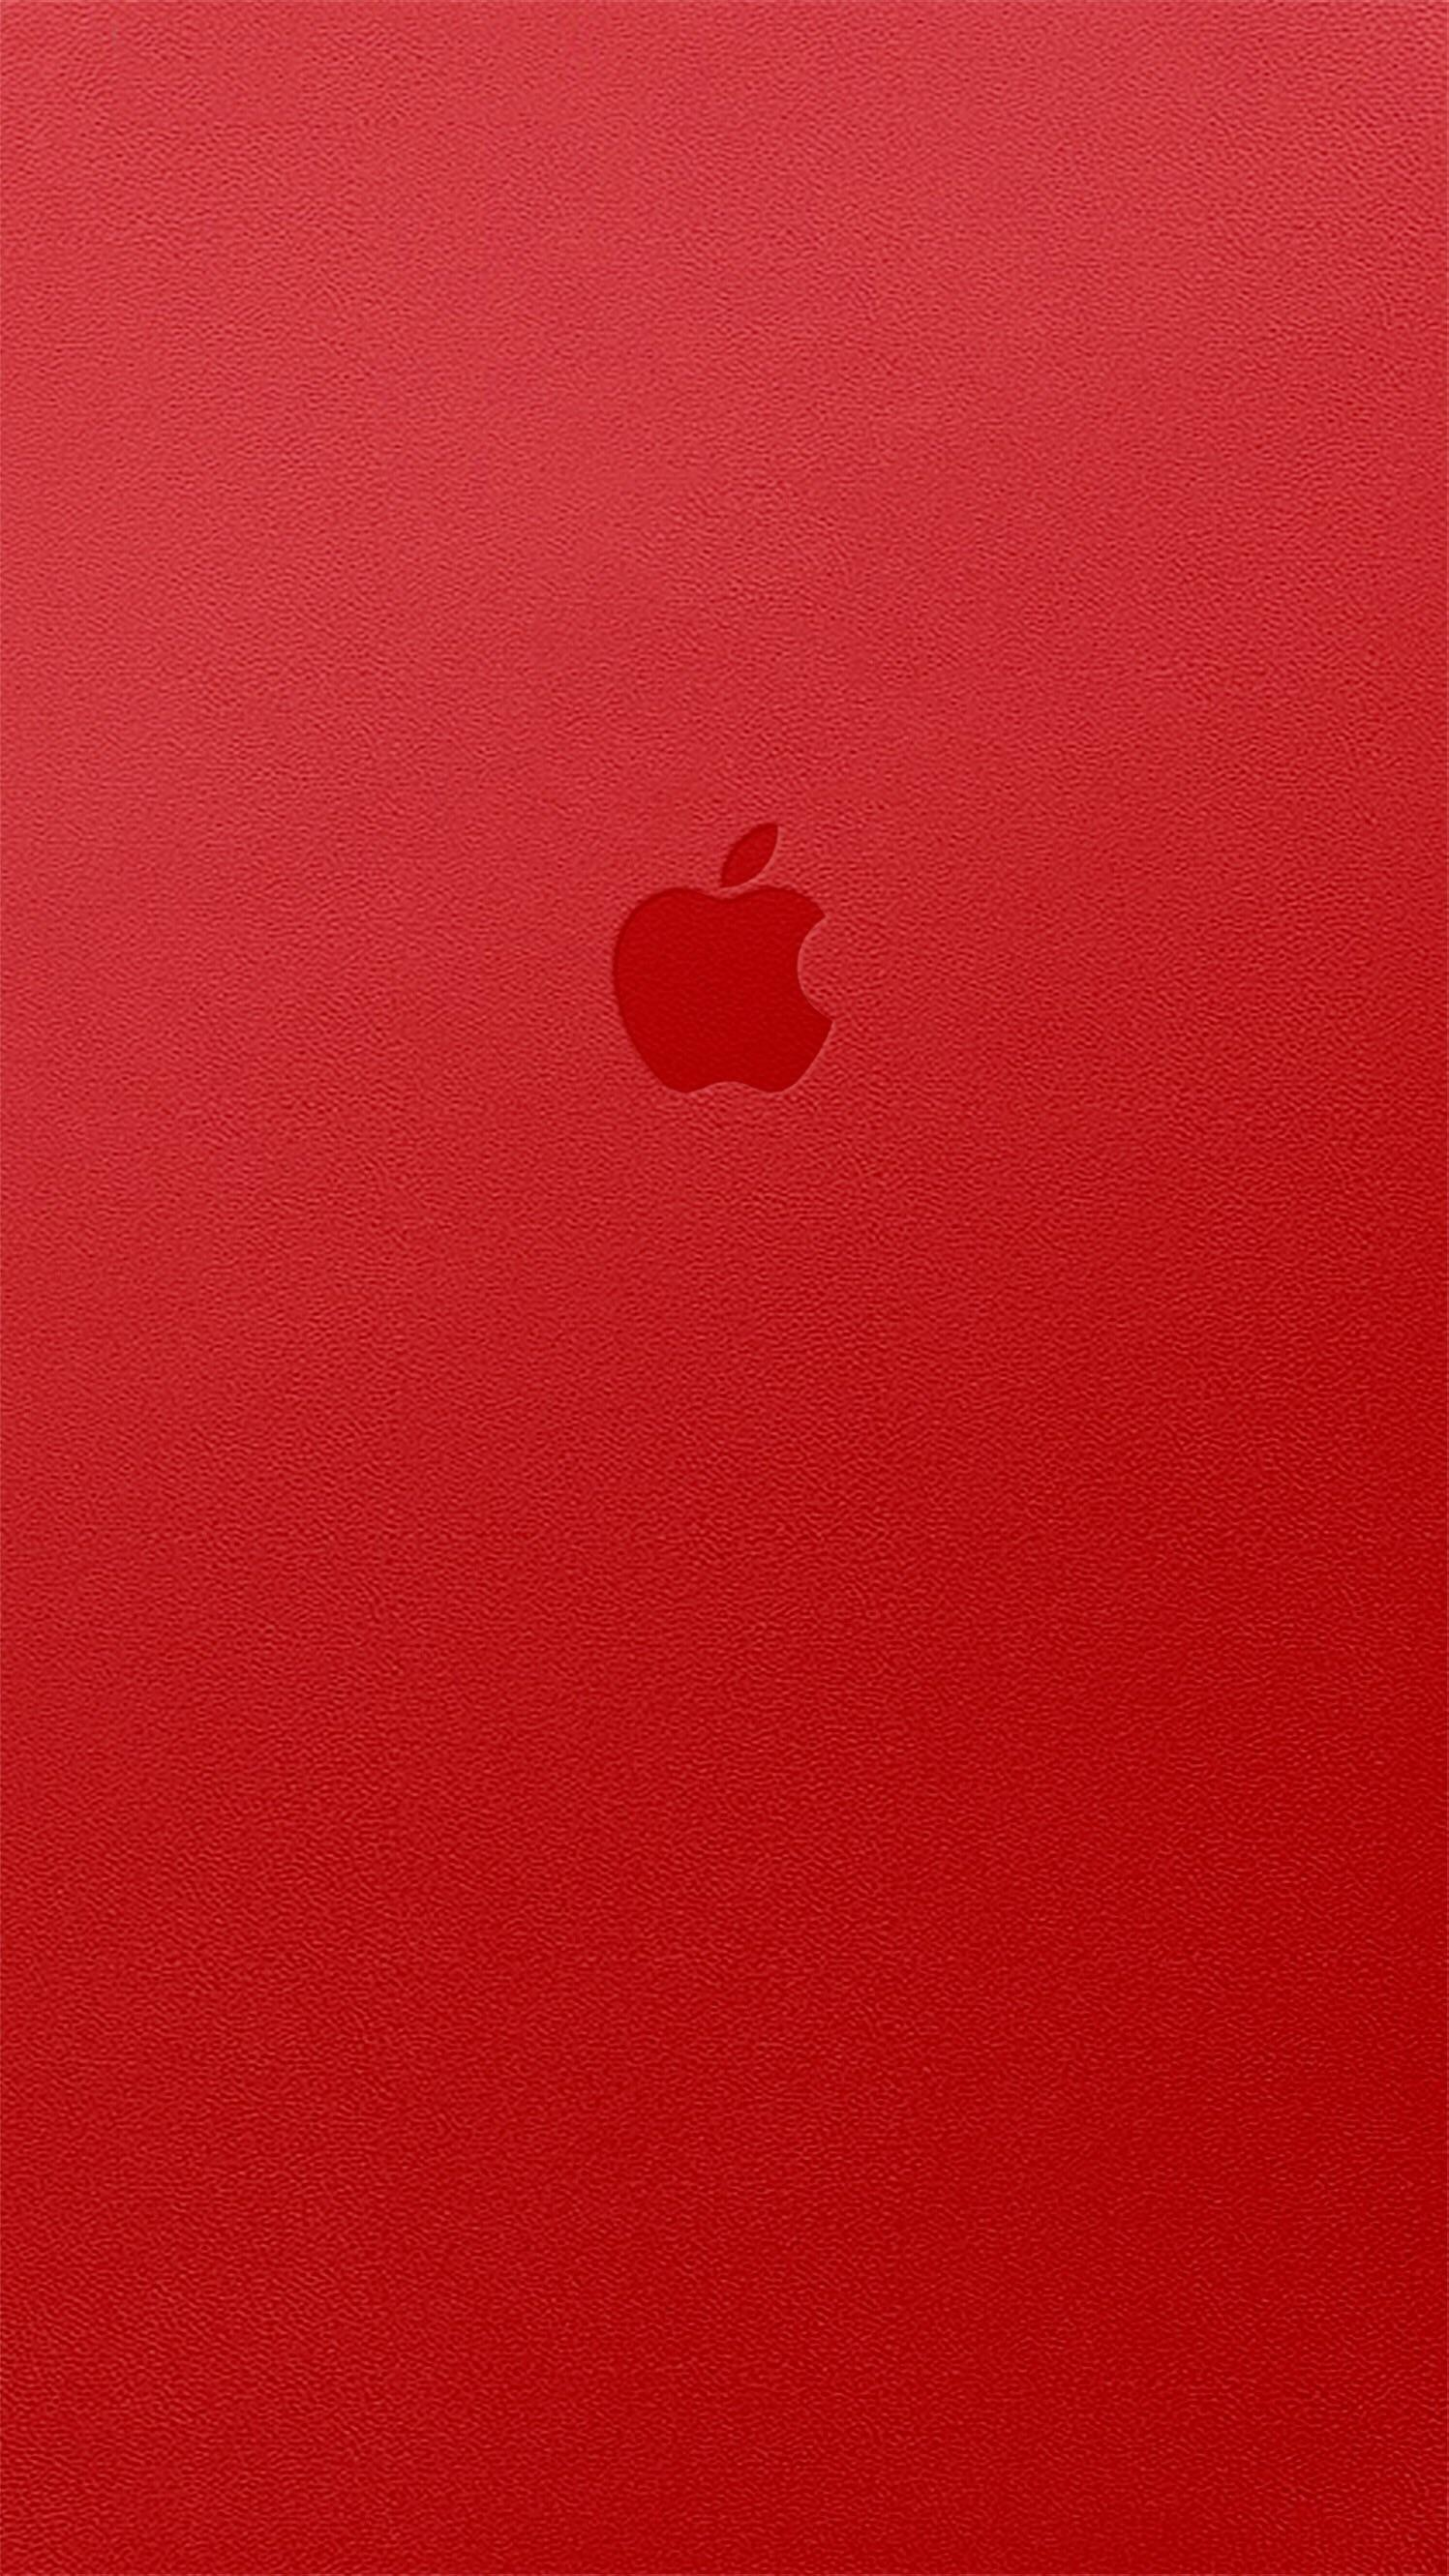 Download 540 Wallpaper Red HD Paling Keren